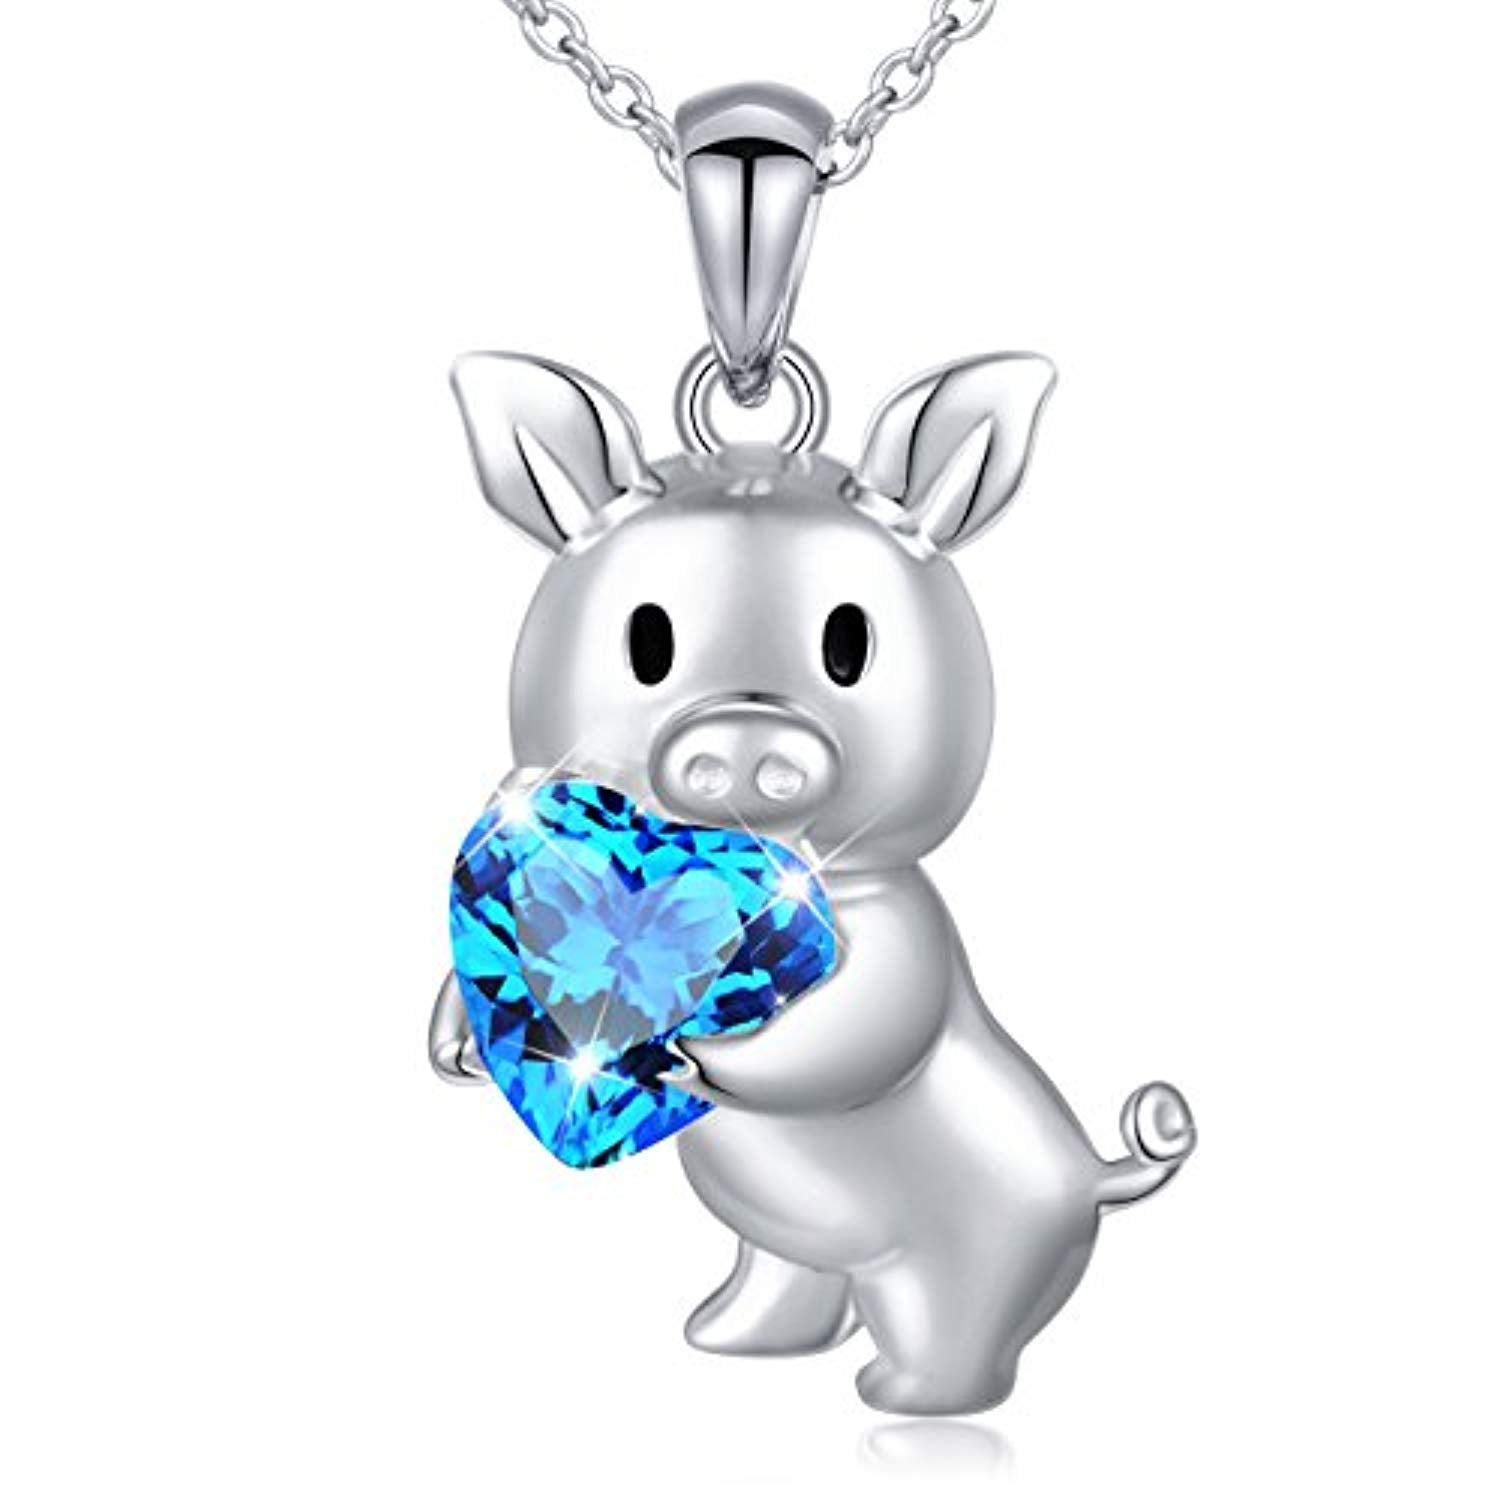 Lovely Pig 925 Sterling Silver Cute Animal Jewelry Cubic Zirconia Love Heart Pendant Necklace for Women Girls